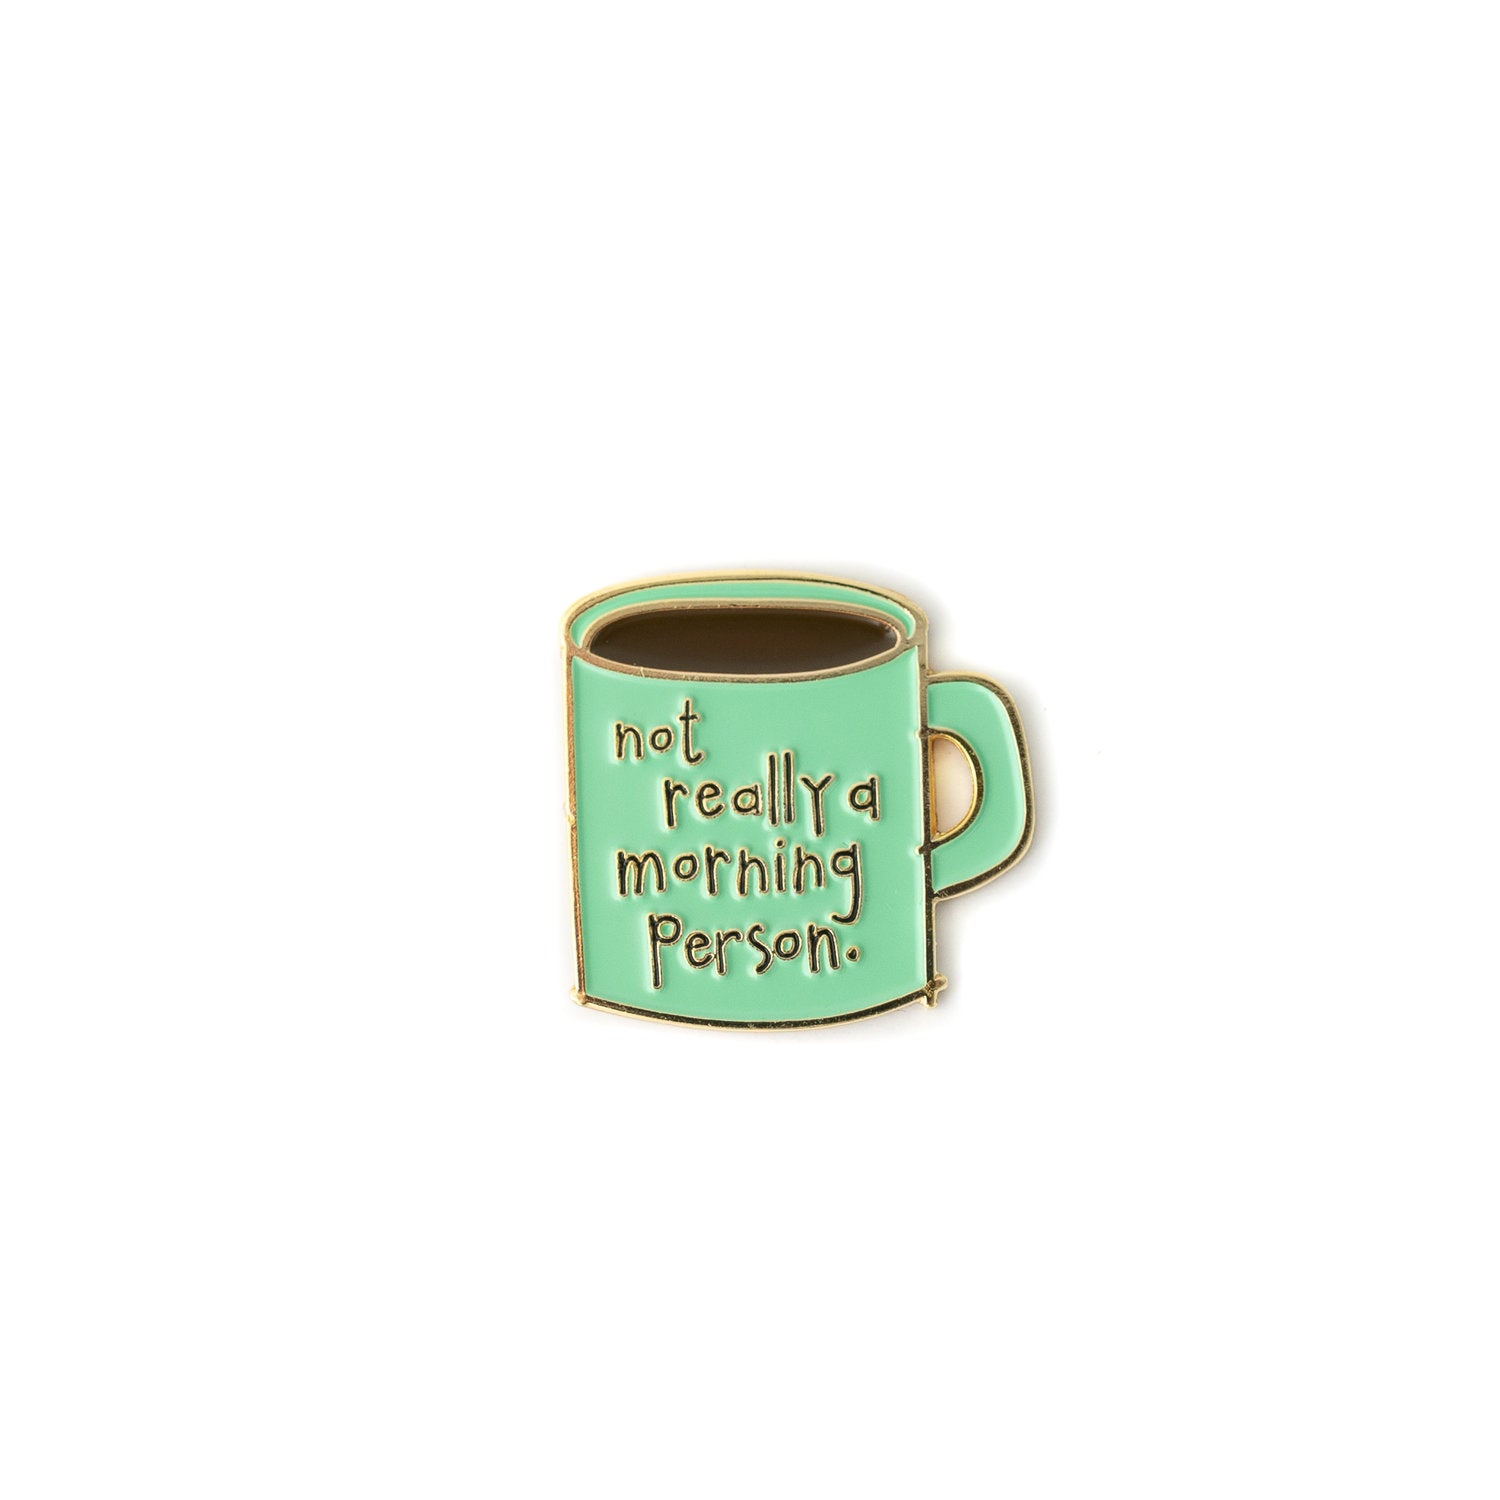 Morning Person enamel pin